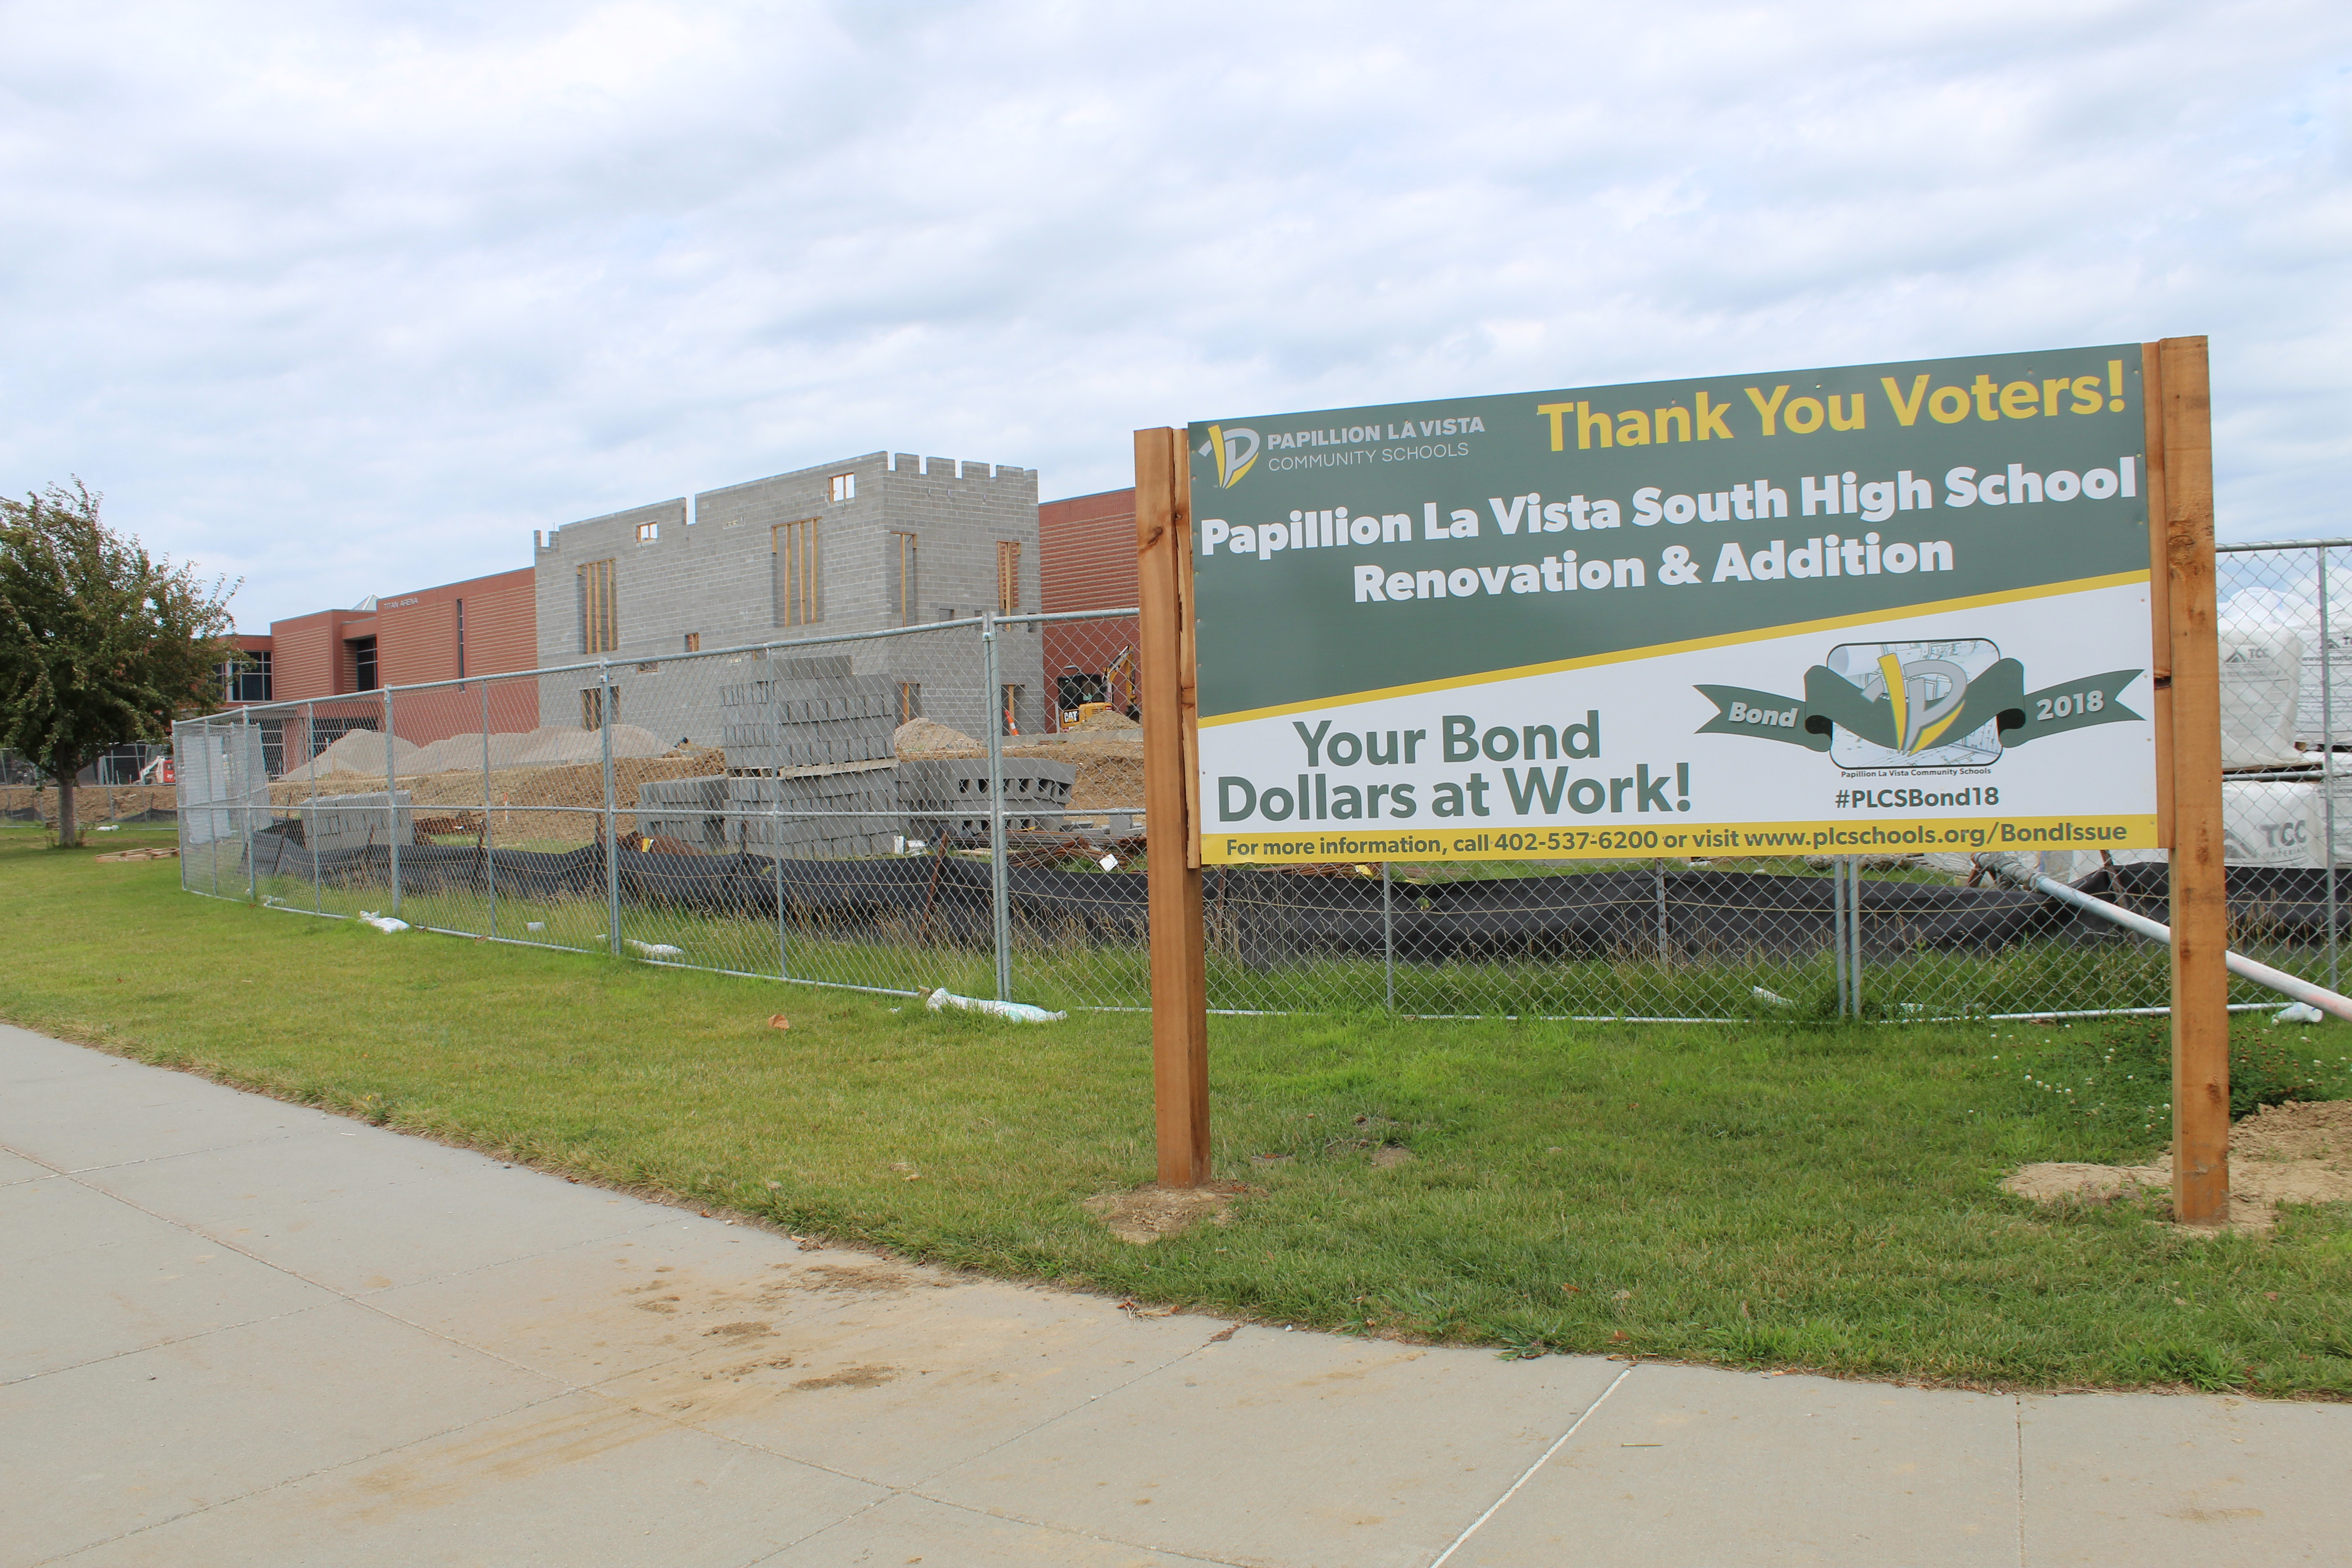 'Your bond dollars at work' signs pop up at school construction sites